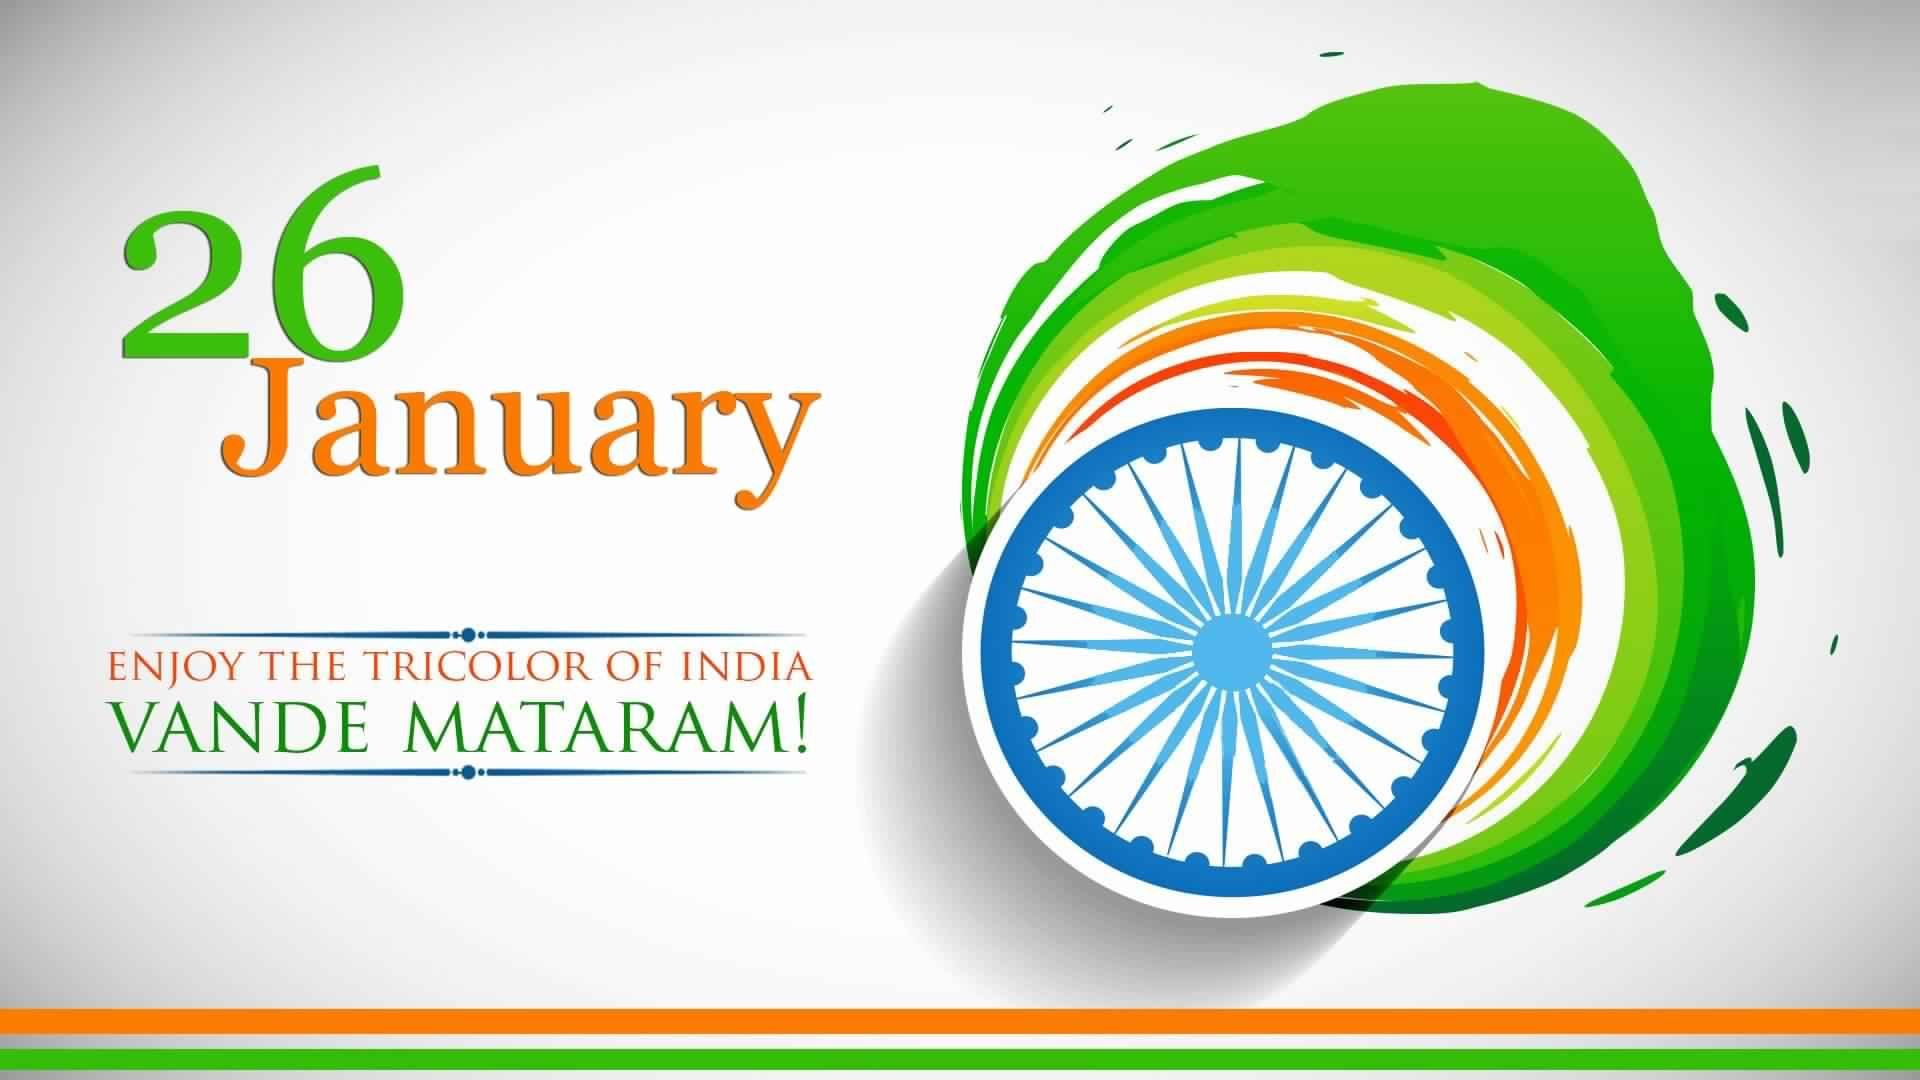 Republic Day 2020 Essay On Republic Day Of India 2020 For Students Republic Day Message Independence Day Hd Wallpaper Independence Day Wallpaper 26 january 2021 image marathi shayri